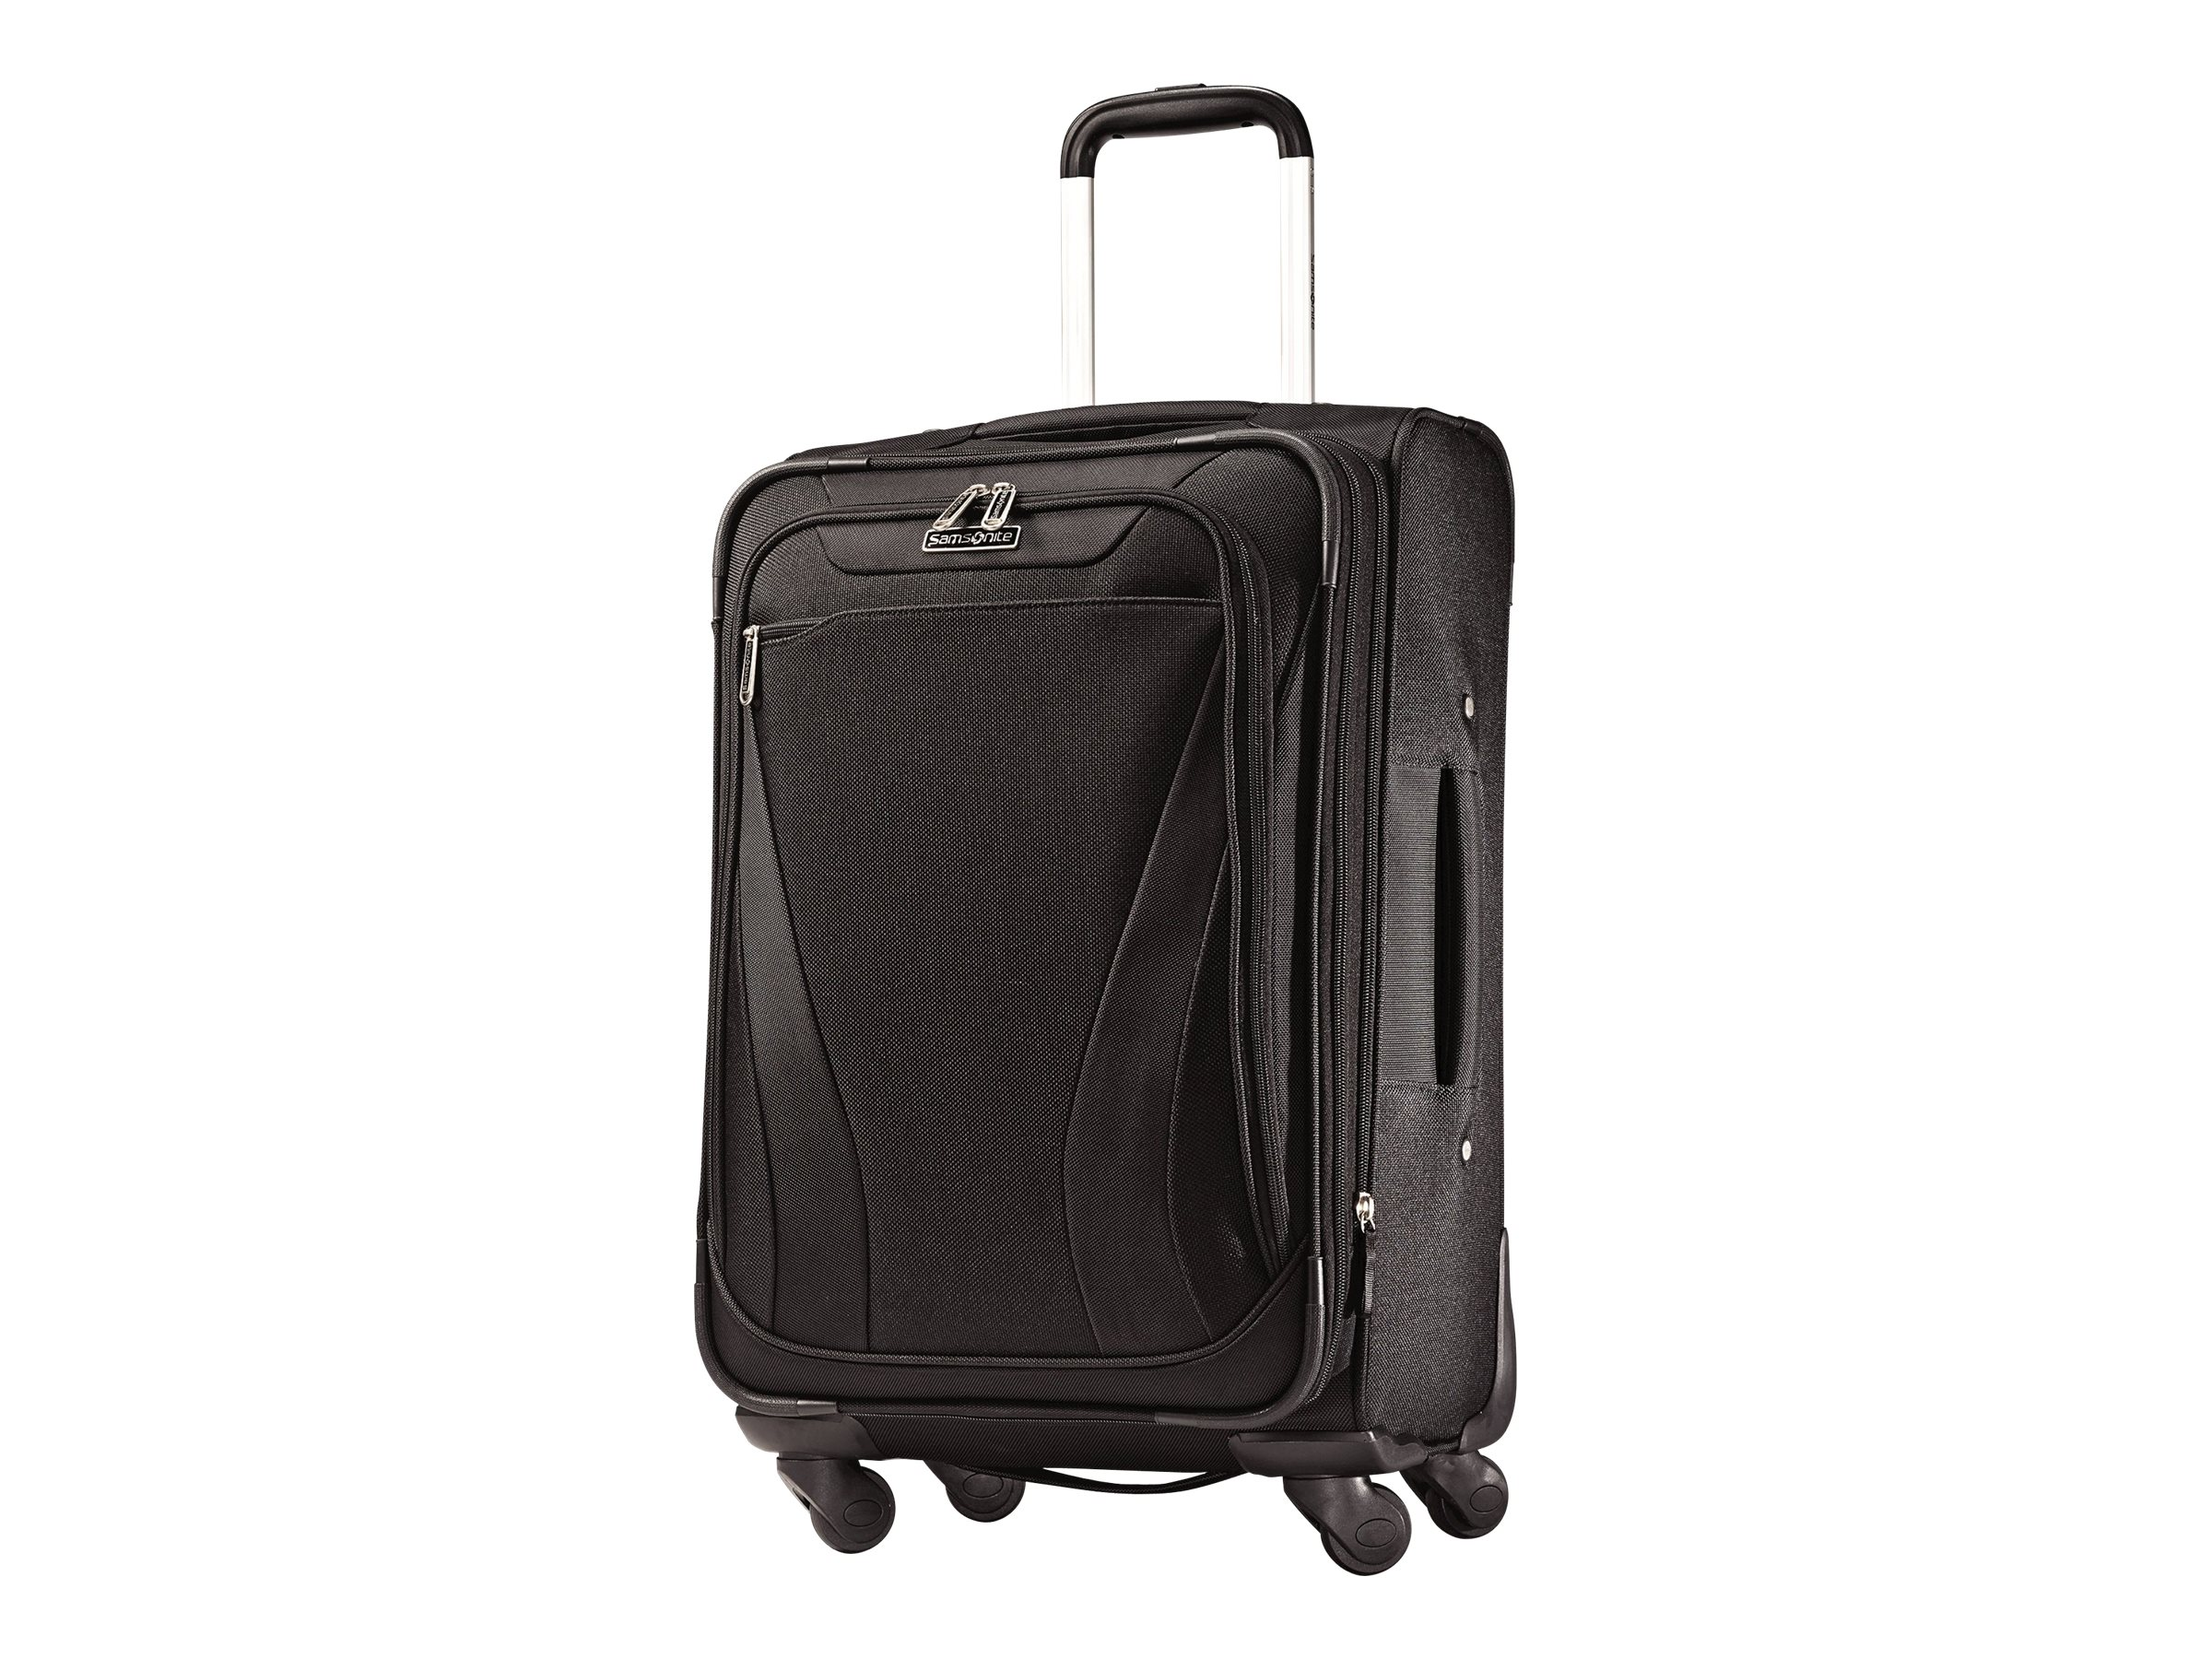 Stephen Gould Samsonite Carry-On Upright Luggage w  (2) Oversized Wheels